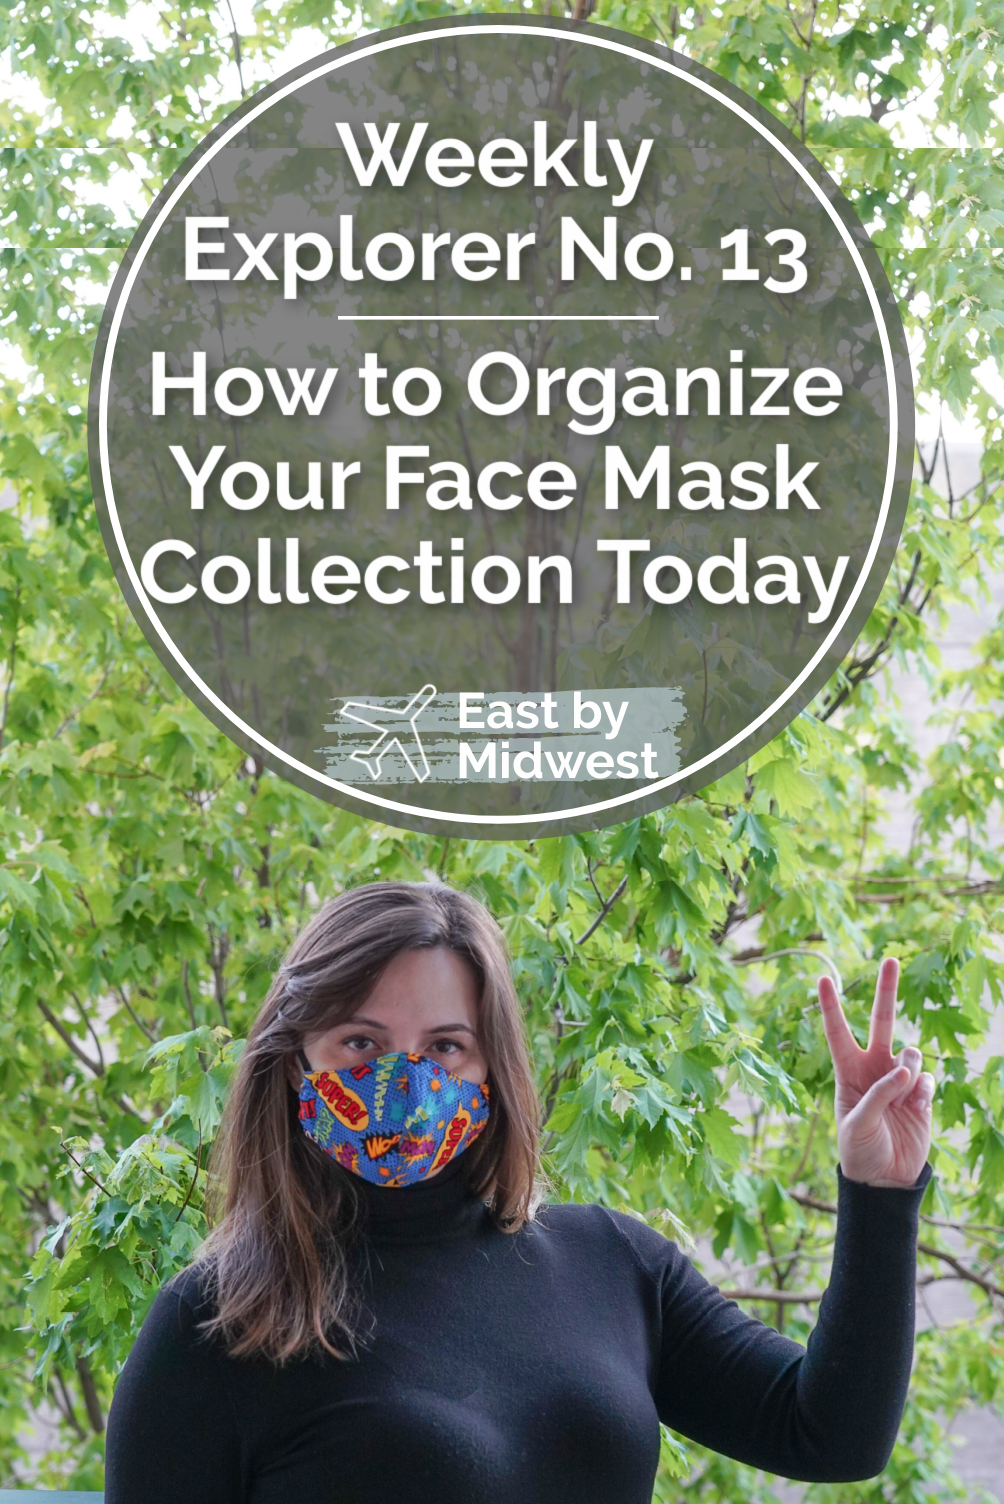 Weekly Explorer No. 13: How to Organize Your Face Mask Collection Today